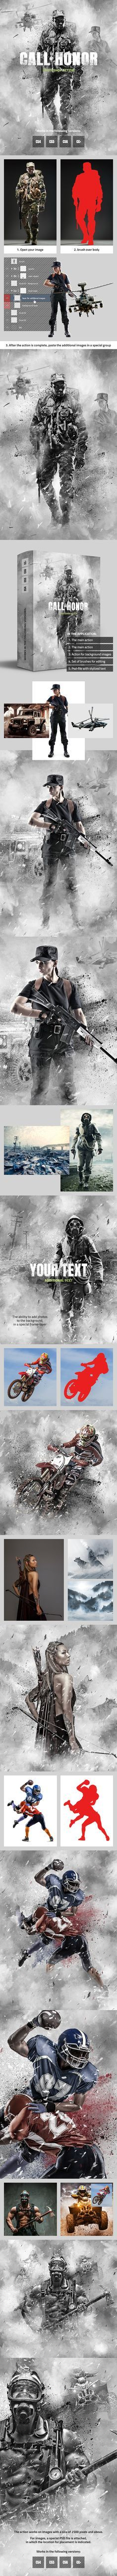 Call of Honor Photoshop Action — Photoshop ATN #sand #gray • Available here ➝ https://graphicriver.net/item/call-of-honor-photoshop-action/21096508?ref=pxcr